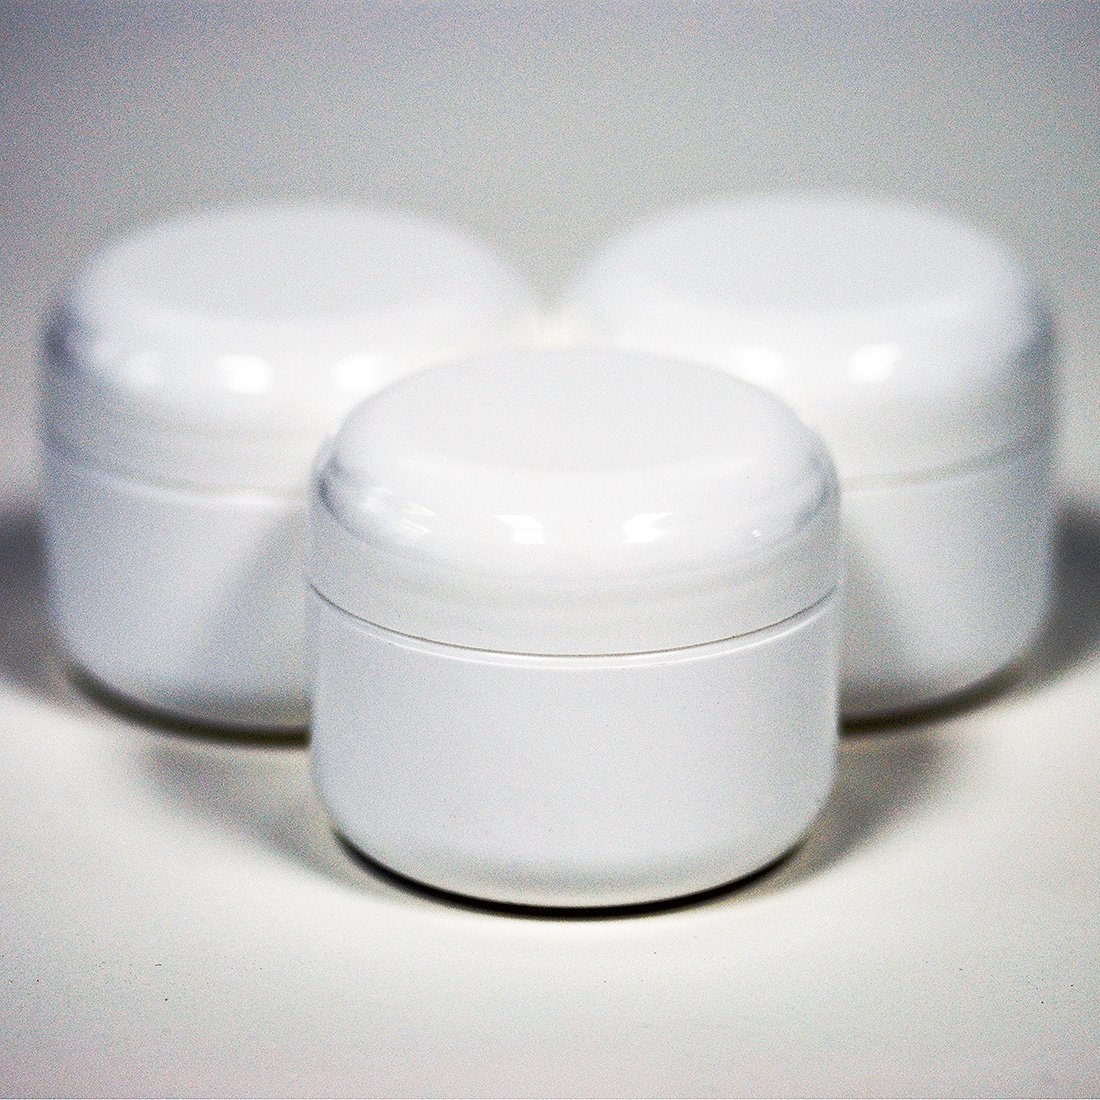 1 Oz White Double Wall Plastic Jar with Dome Lid 12 Per Bag with Free Daybeauty Skincare Sample